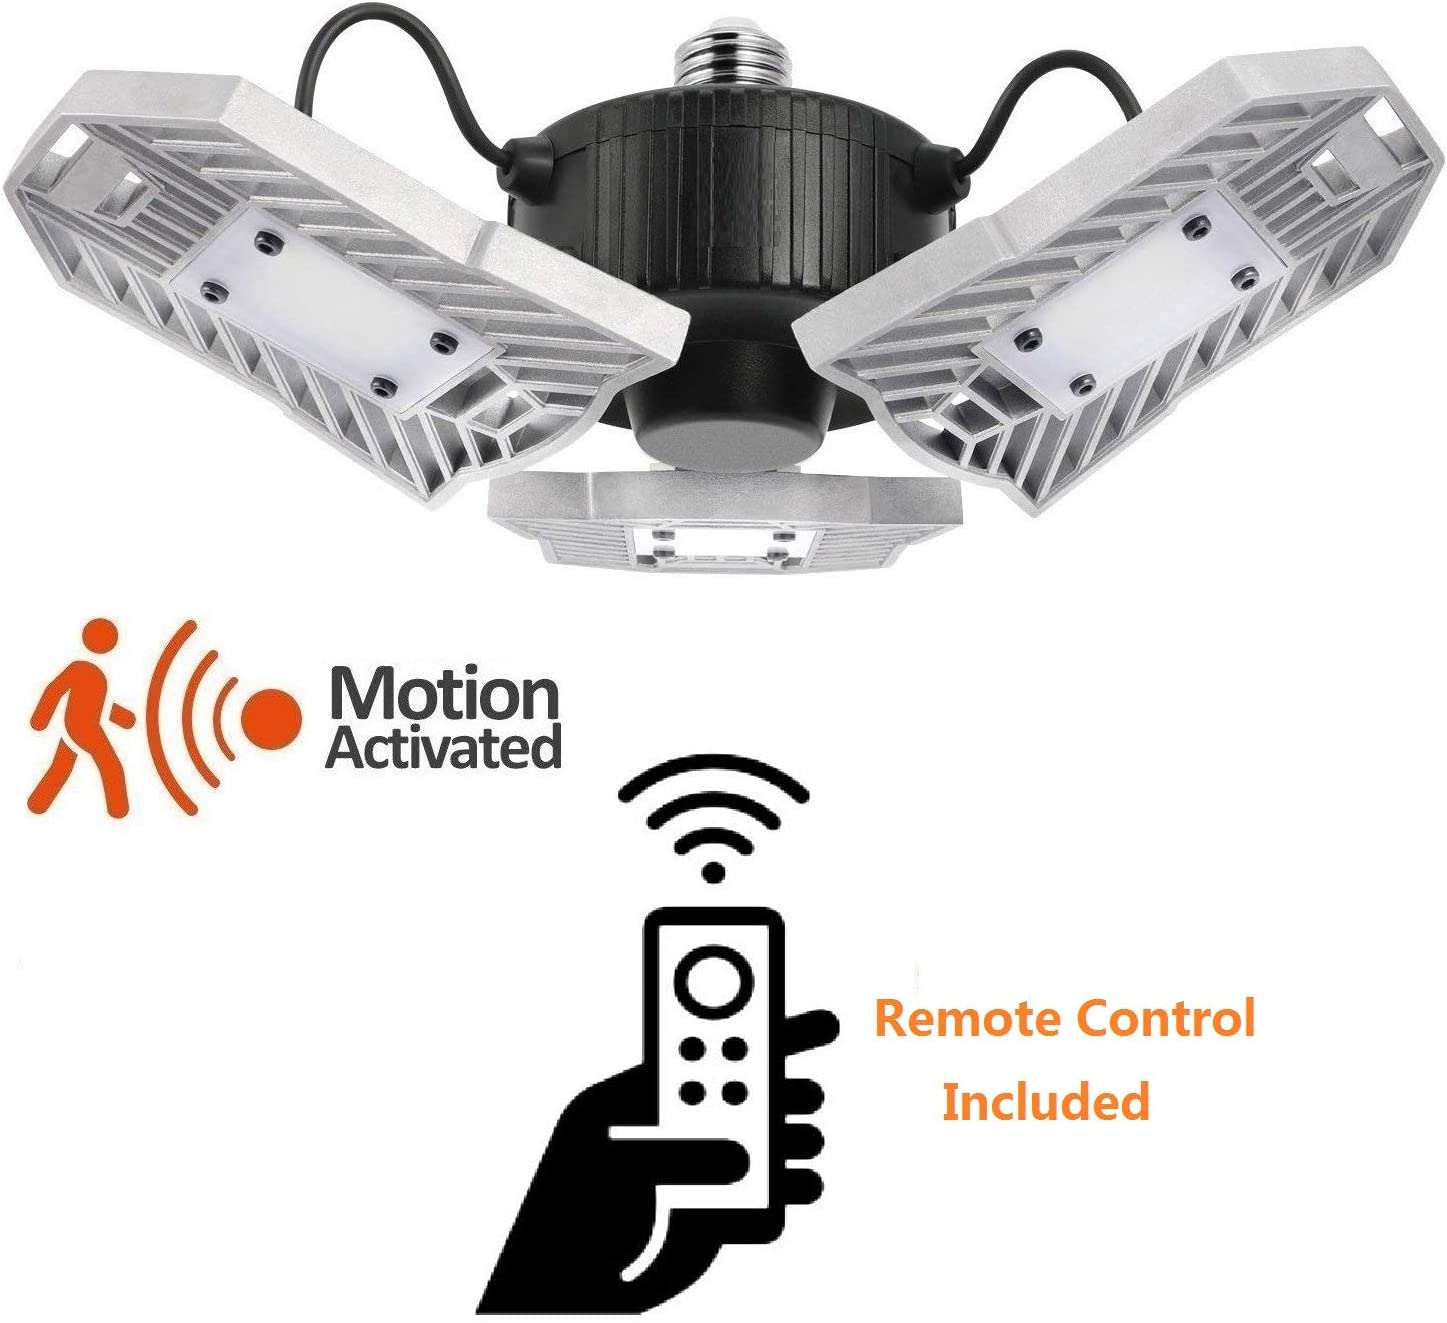 60W Motion Activated LED Garage Light with Remote Controller, Holding Time & Sensitivity Adjustable with Photocell for Garage Ceiling Lighting Fixture 6000K,Daylight